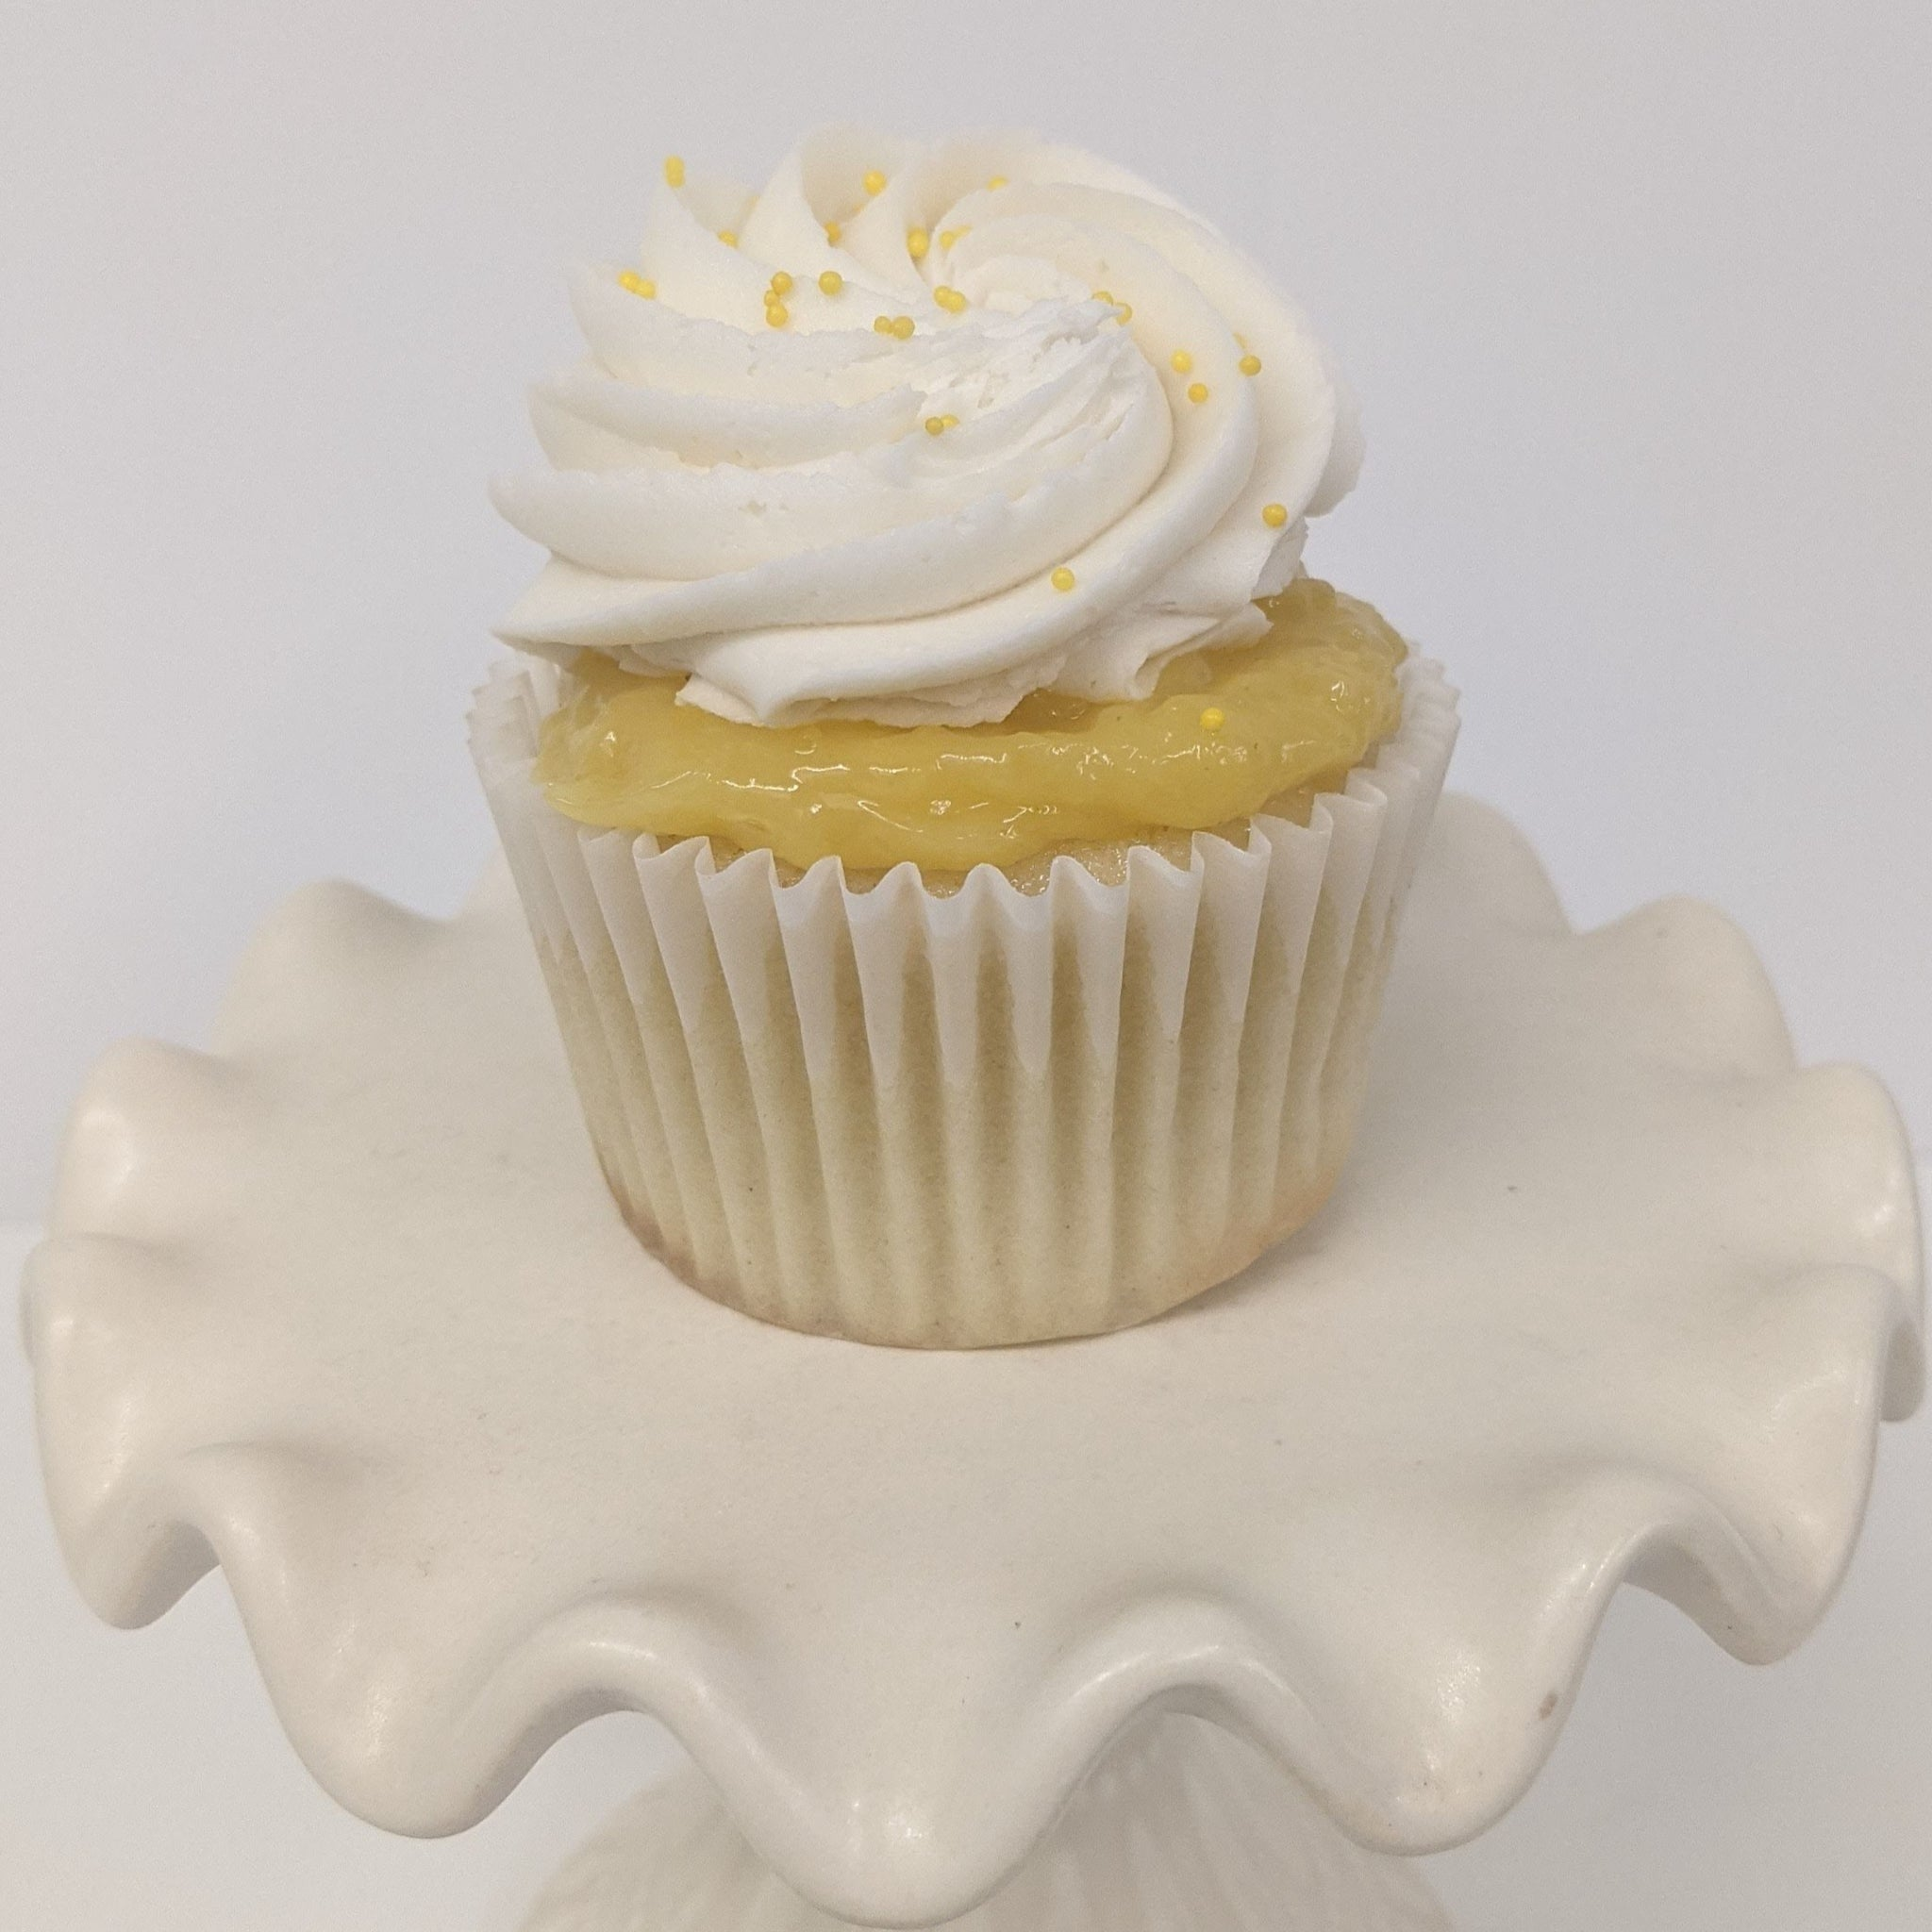 Lemon Delight Cupcake - 6 cupcakes